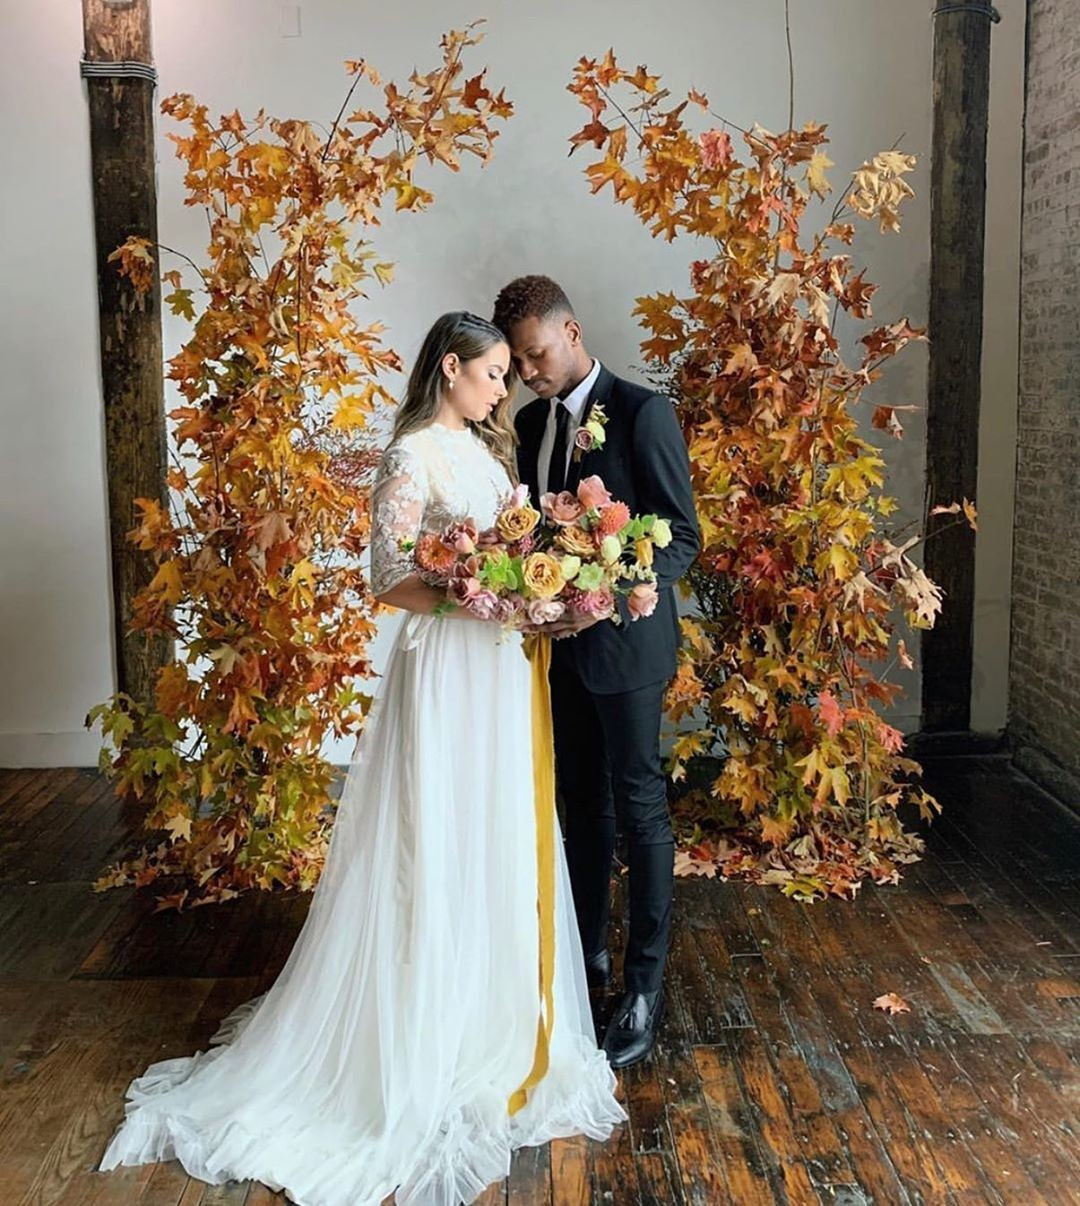 FALL COLORS! Save this for your #fallwedding inspo